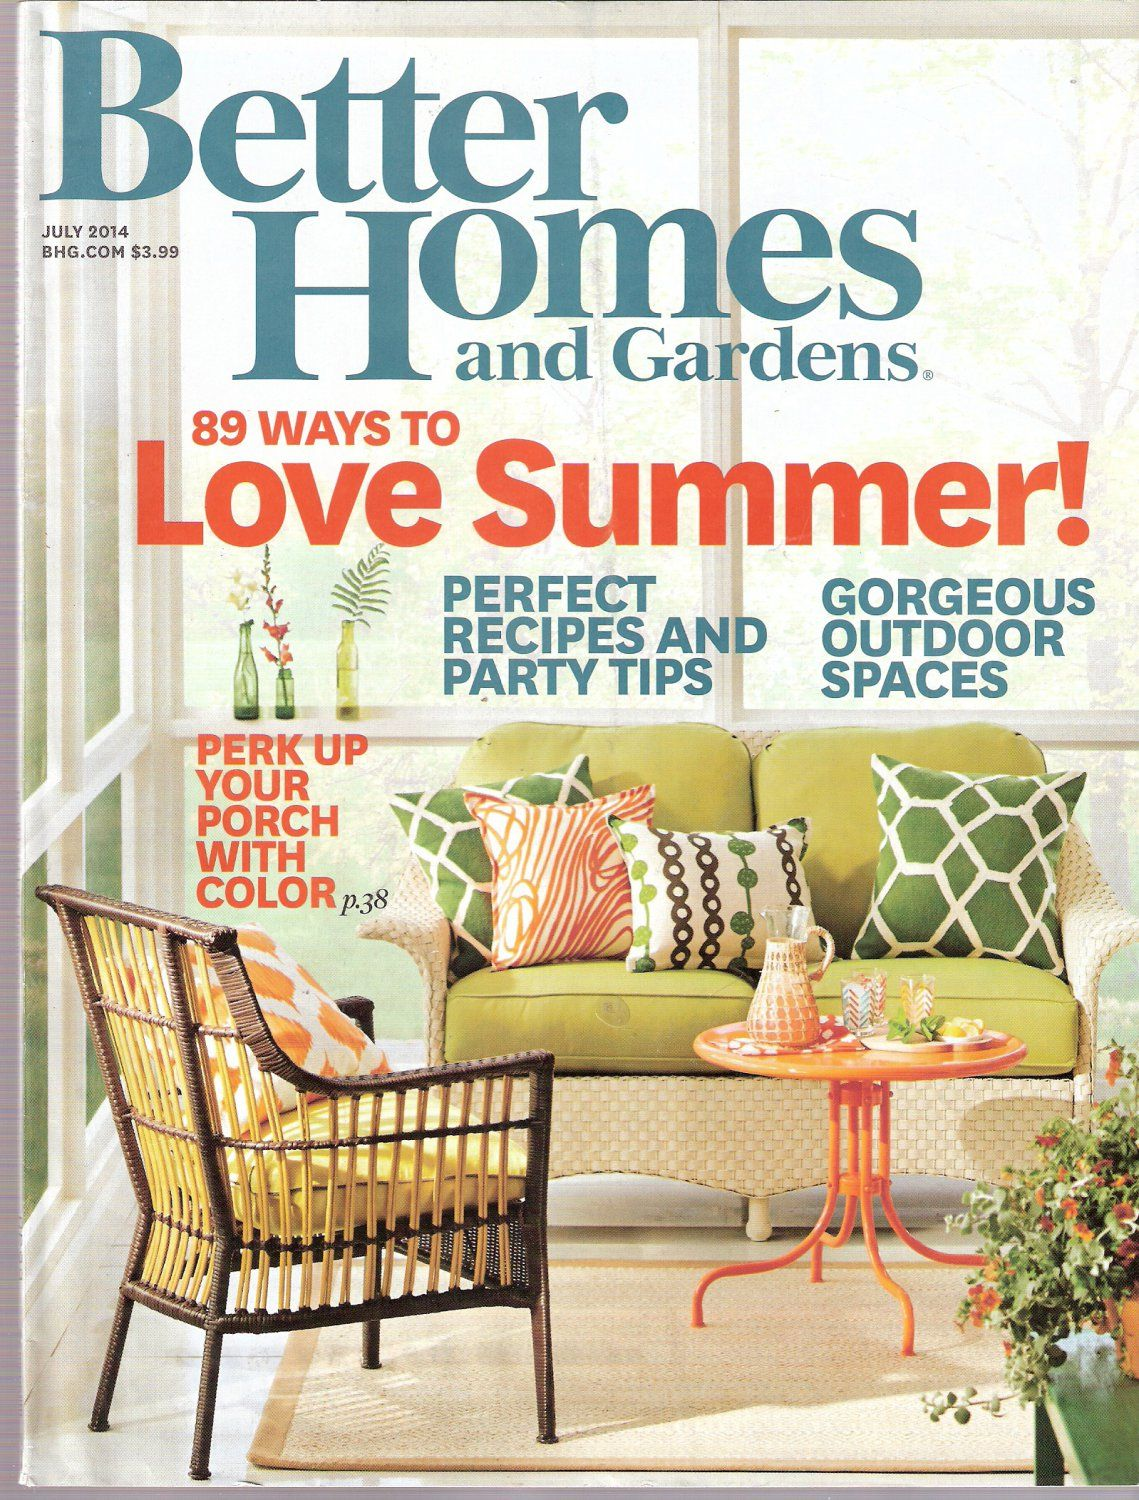 682bee7a4cf316f396ee388fa0f9acaf - Better Homes And Gardens Magazine July 2014